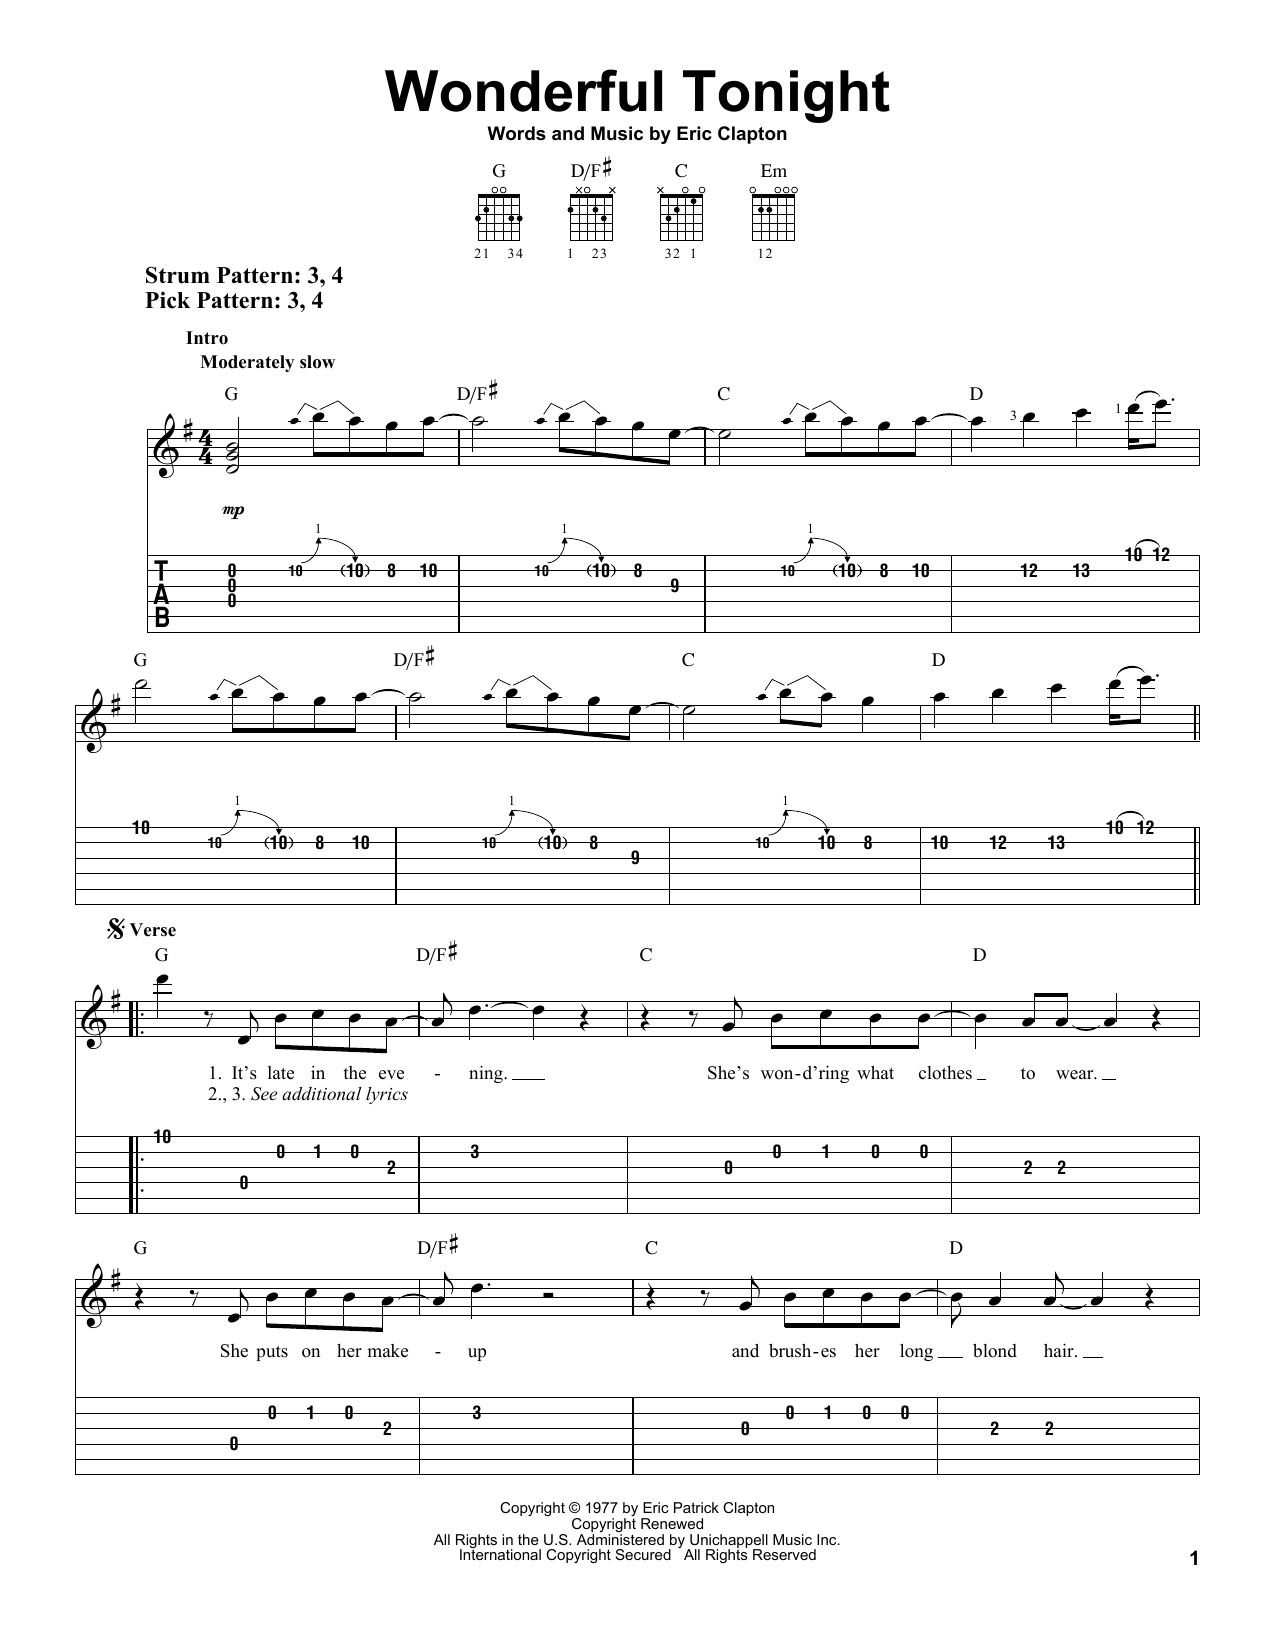 Wonderful Tonight sheet music by Eric Clapton (Easy Guitar Tab u2013 30070)